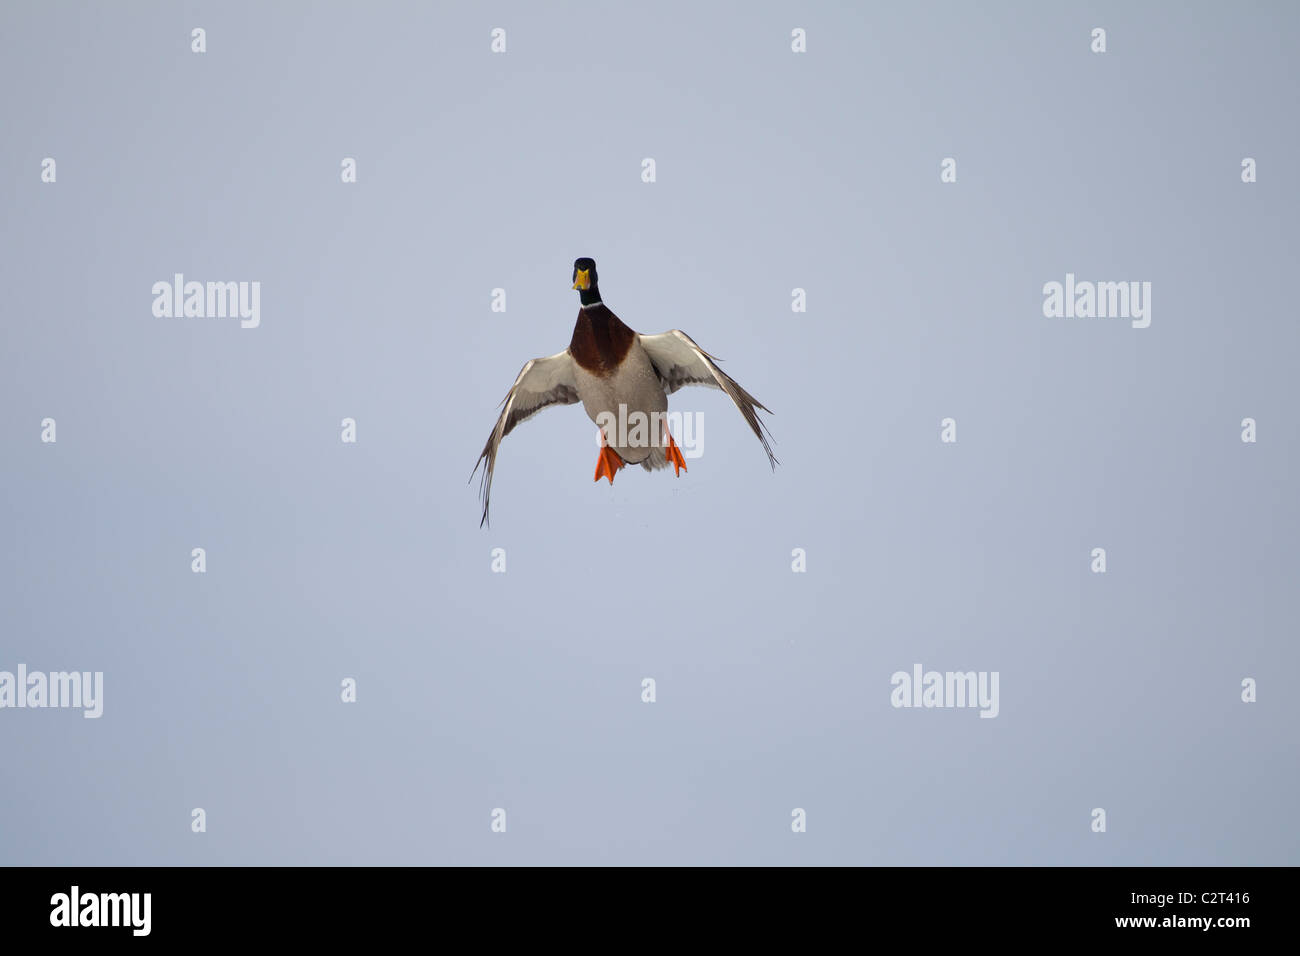 wings cupped stock photos wings cupped stock images alamy